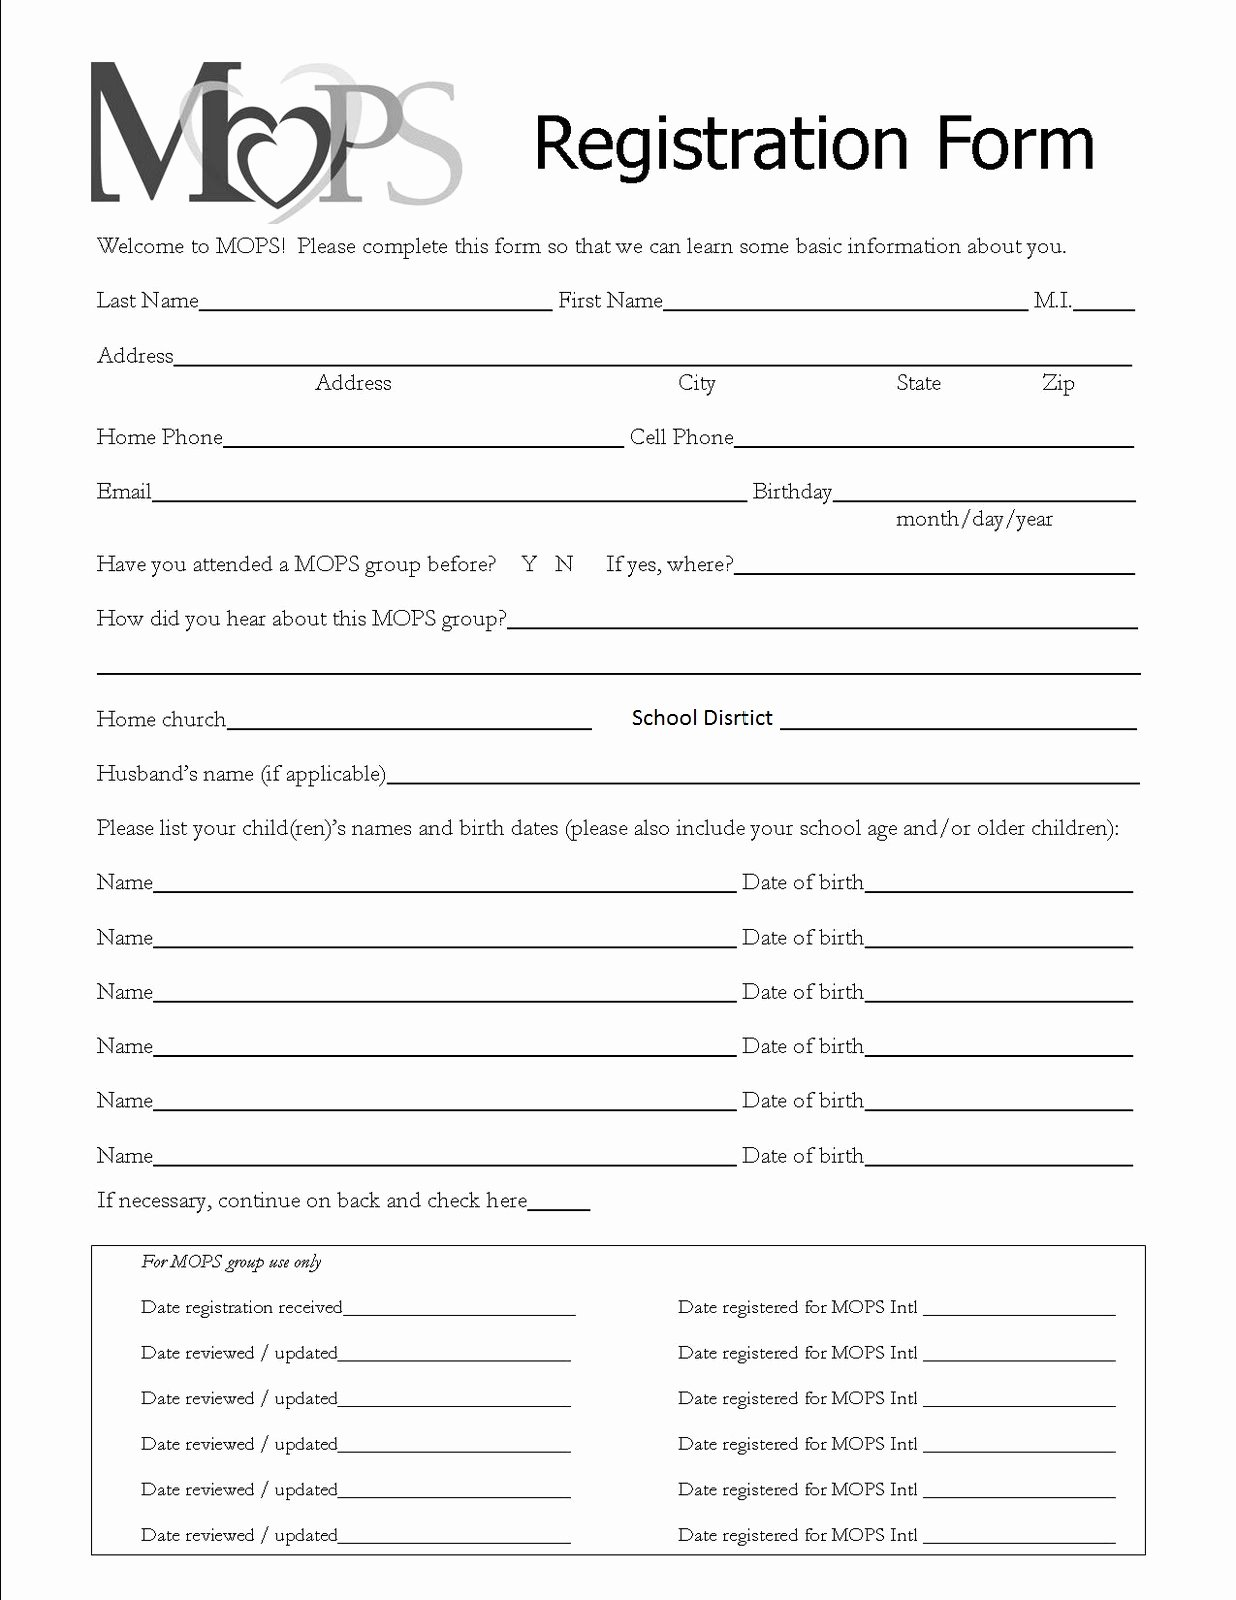 Printable Registration form Template Elegant Mothers Of Preschoolers Chippewa Evangelical Free Church